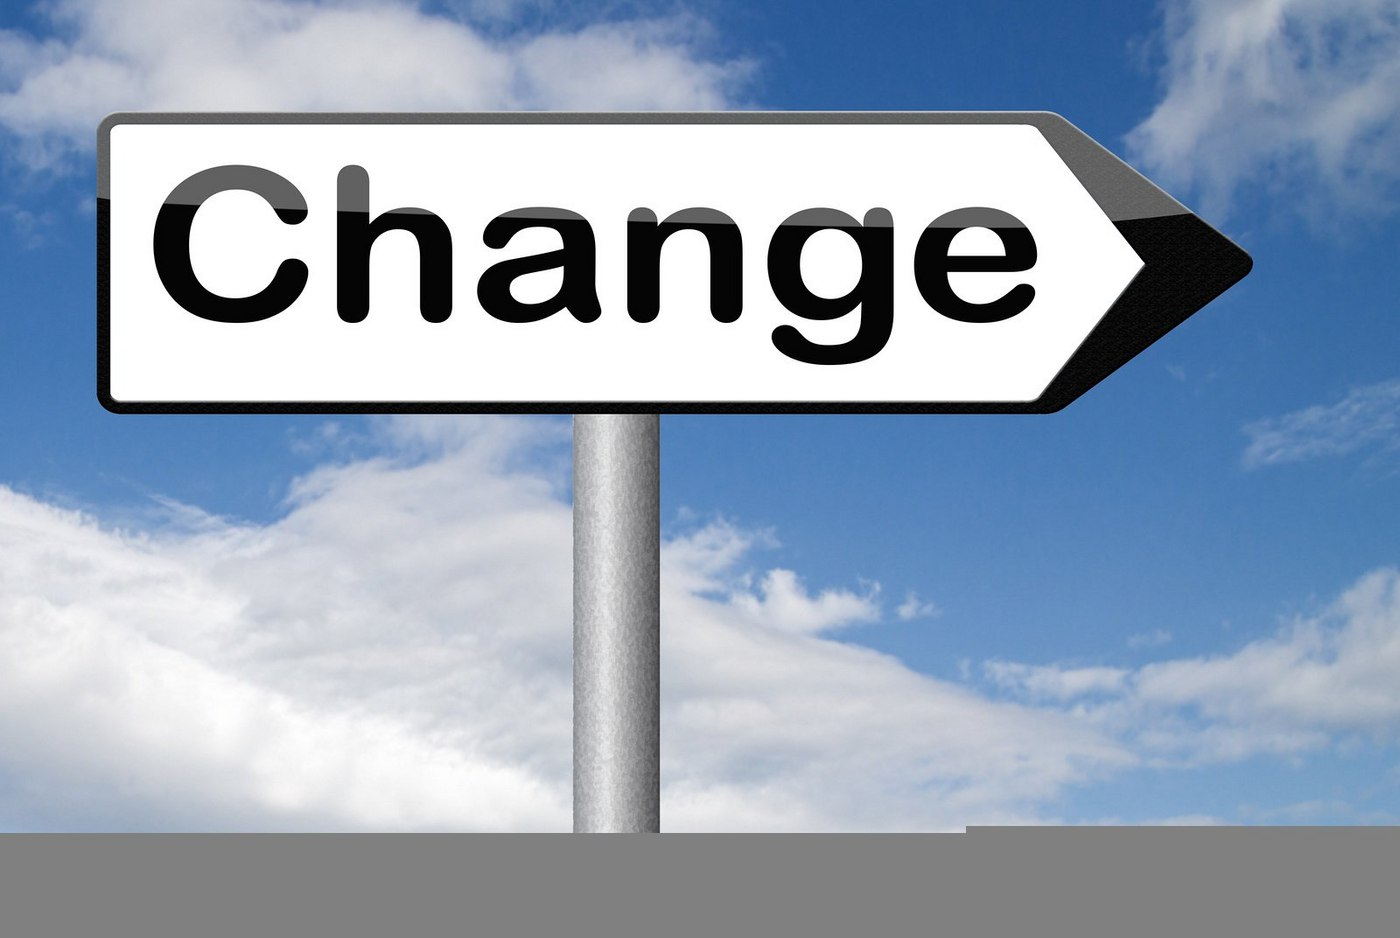 bigstock-change-now-take-another-direct-79587448.jpg.crdownload.jpeg